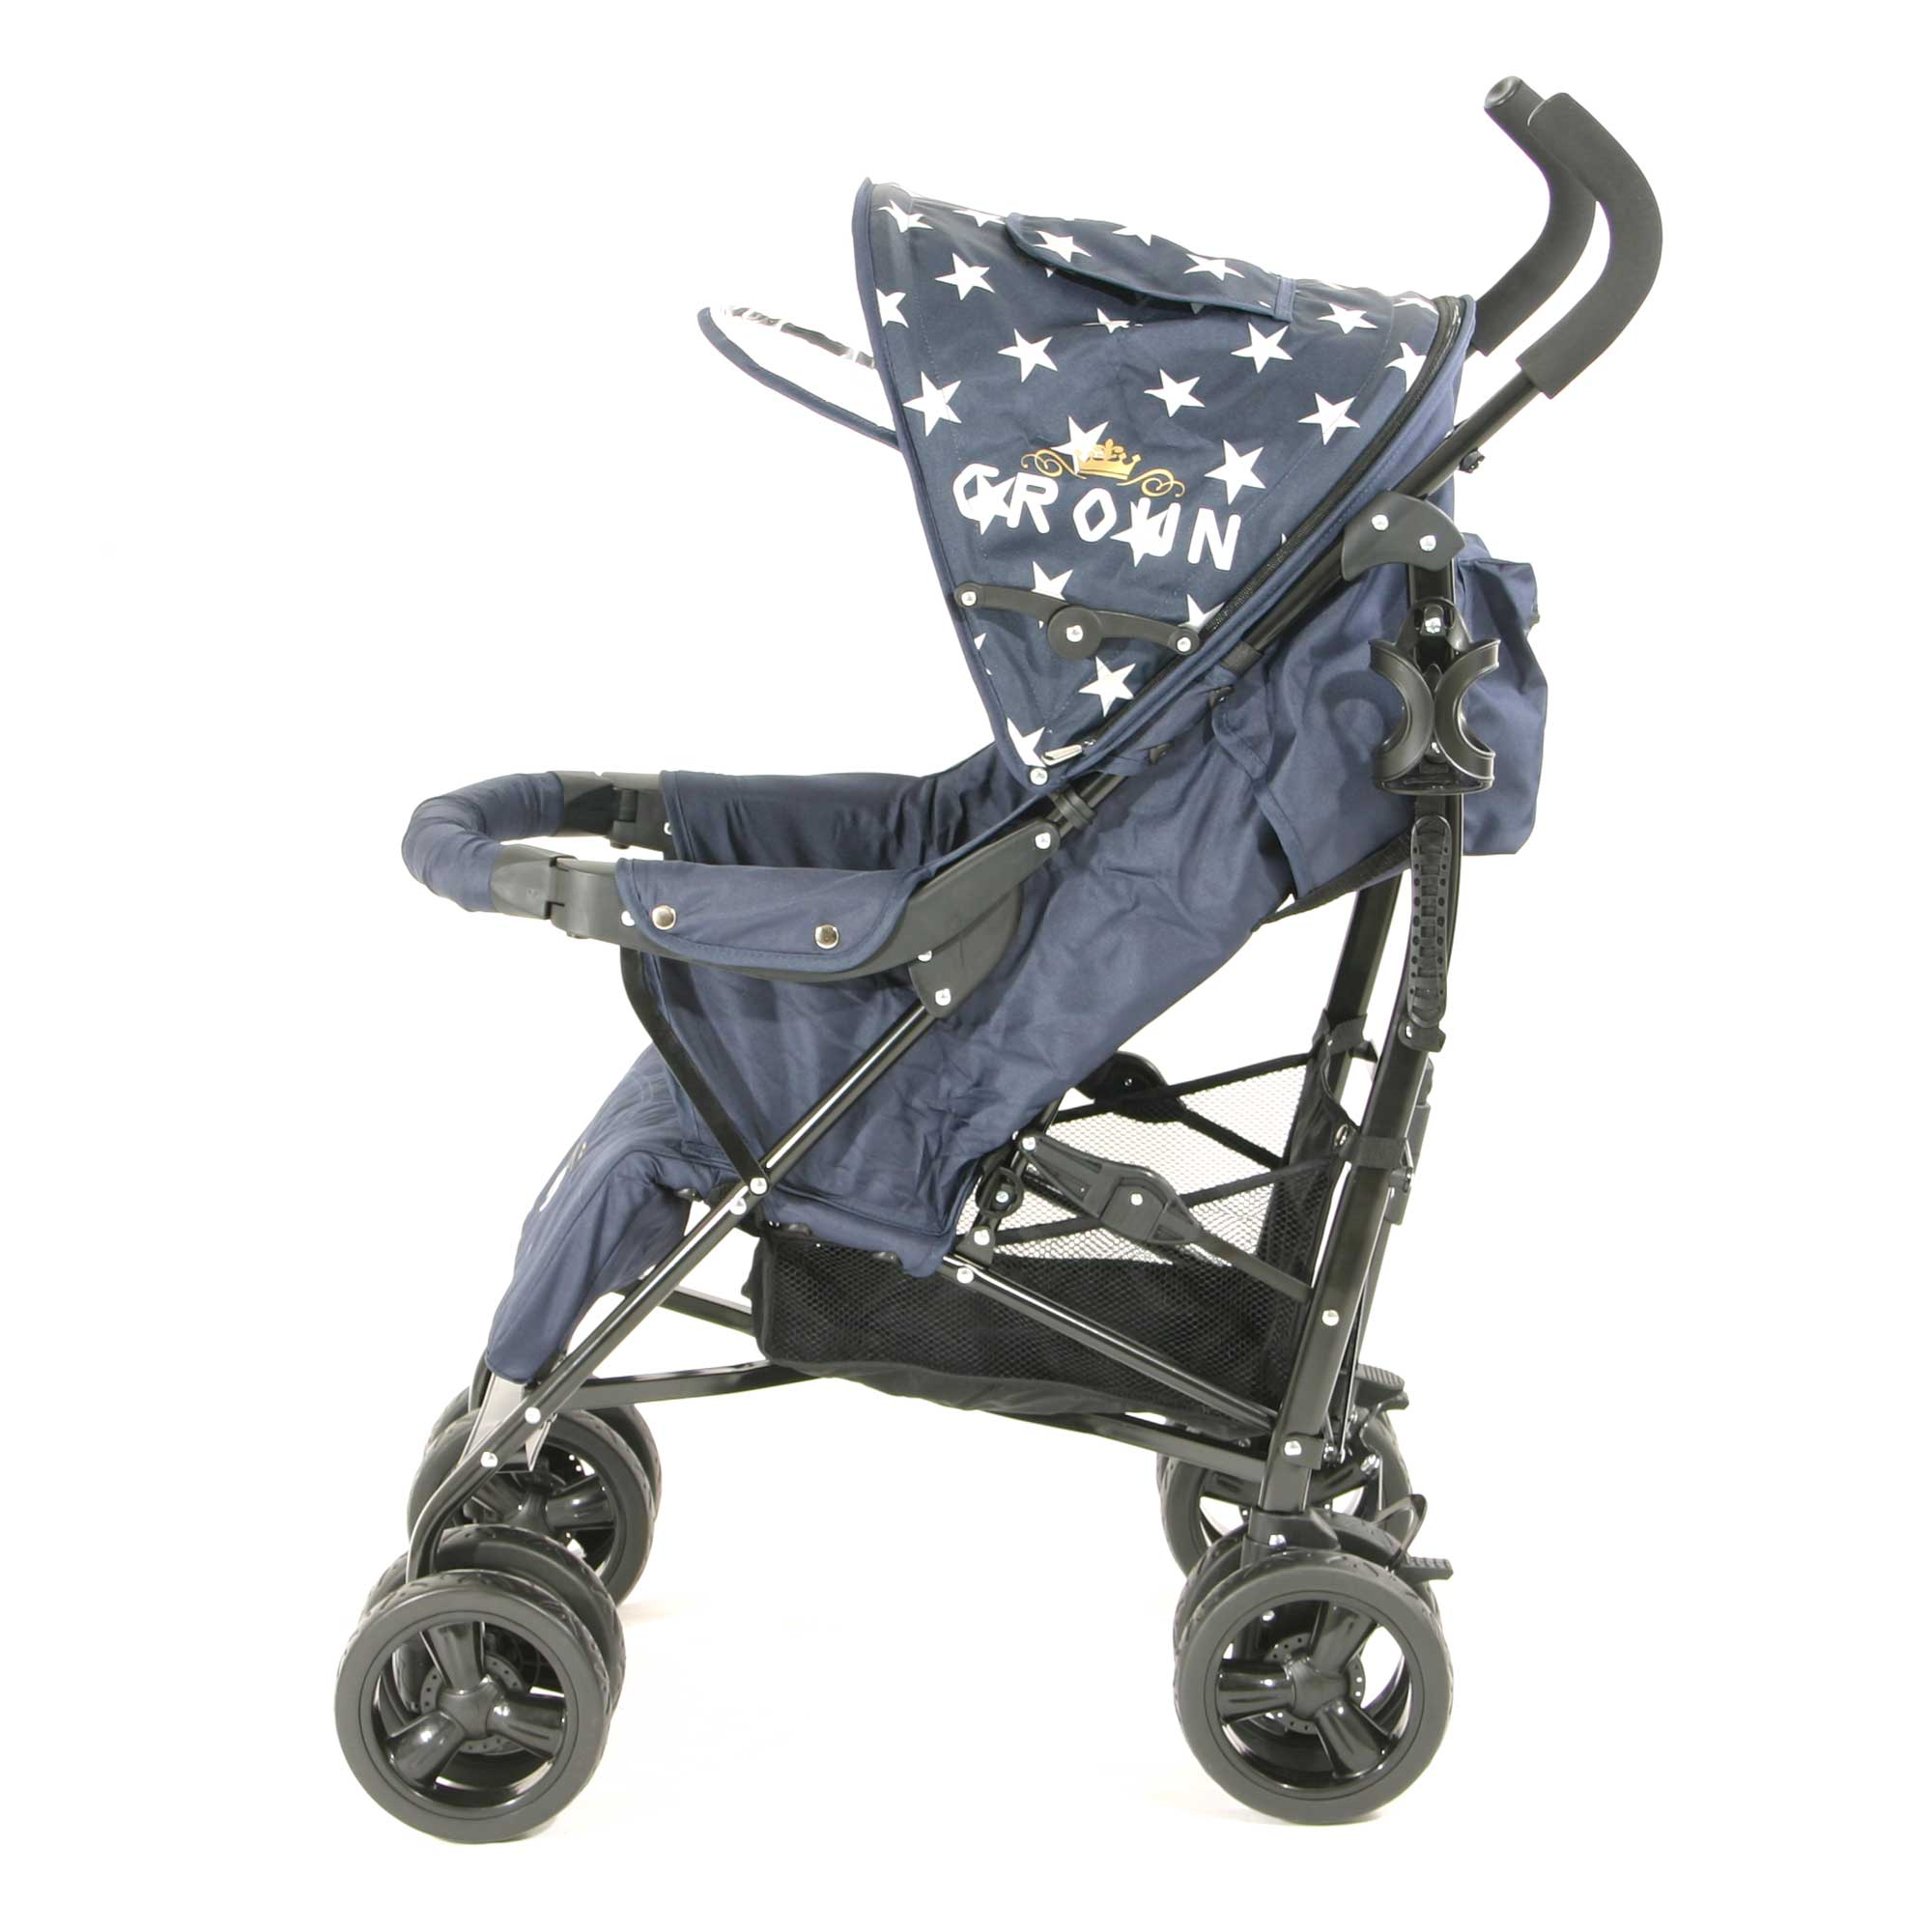 crown st520 buggy kinderwagen blue star kinderwagen buggy. Black Bedroom Furniture Sets. Home Design Ideas